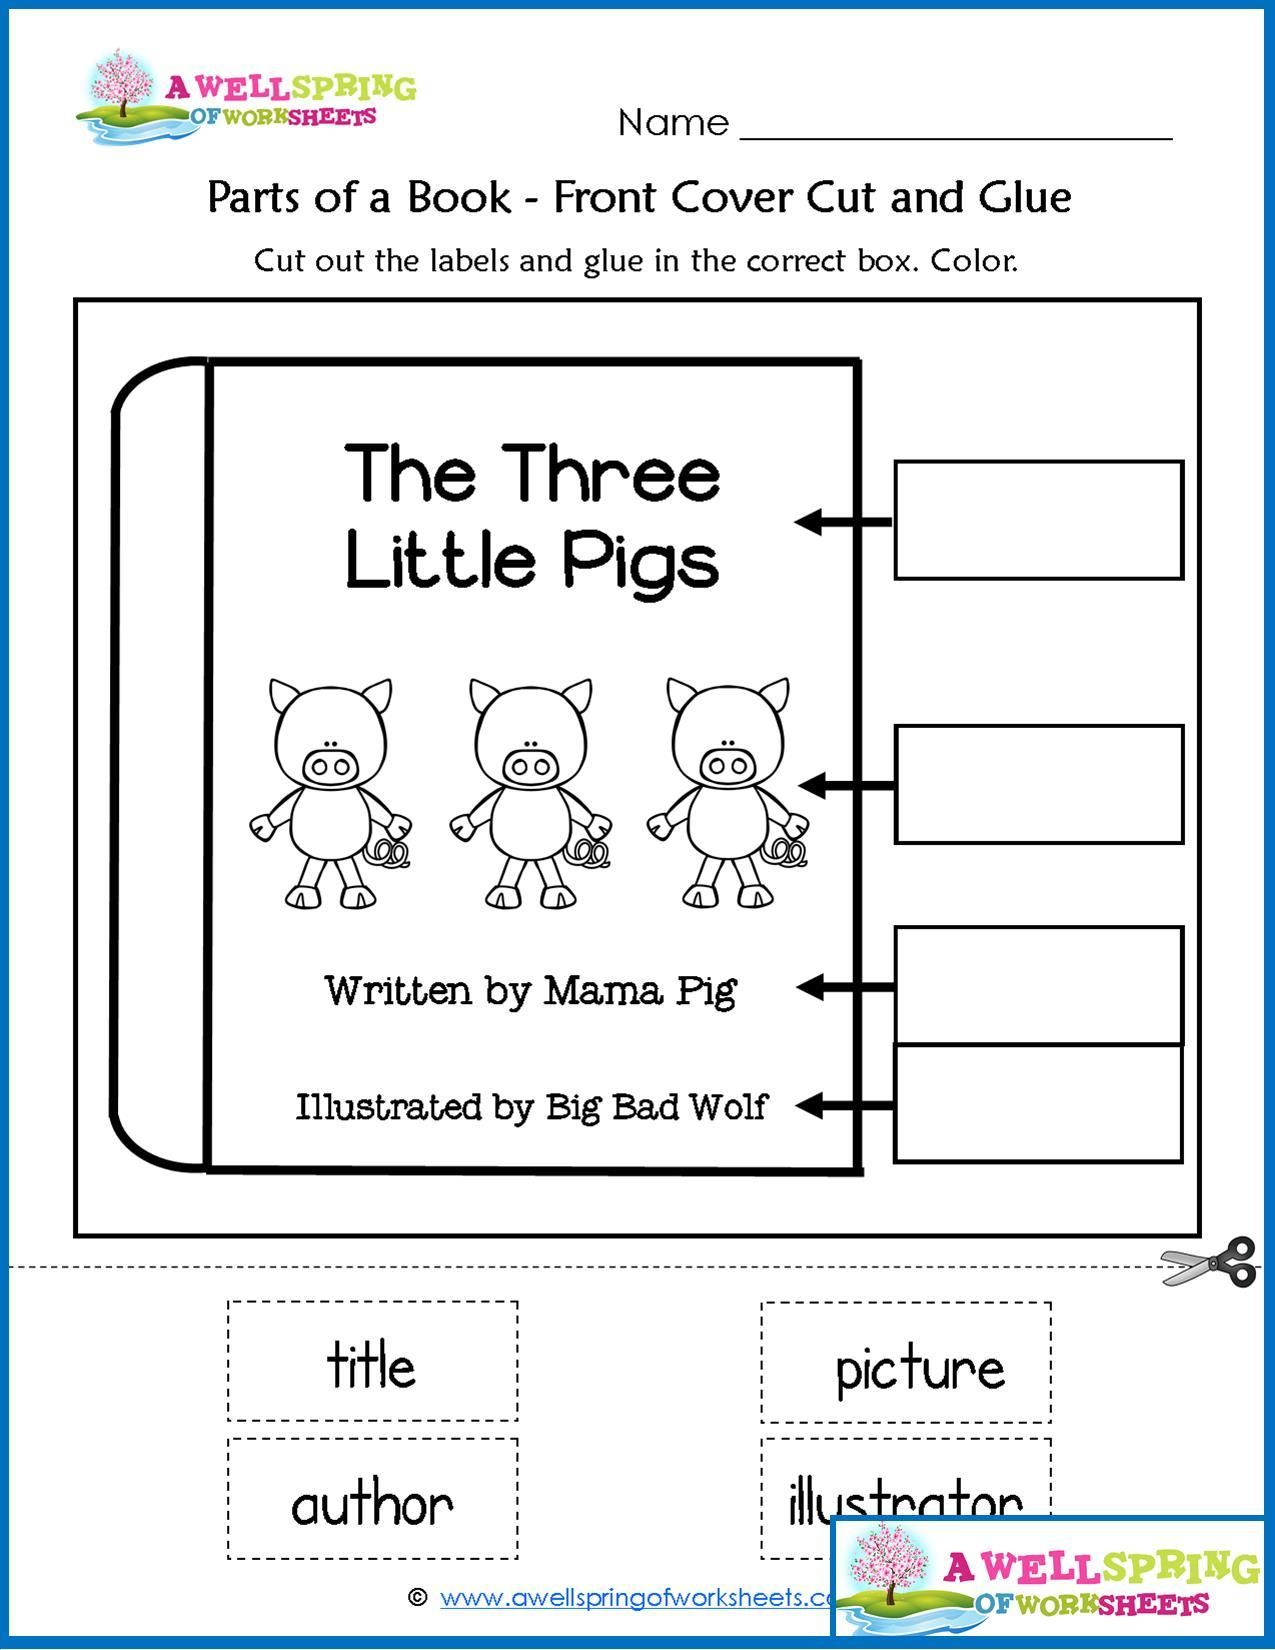 Parts Of A Book Worksheets Vocabulary Cards Check Out This Set Kindergarten Like One Page About The Front Cover